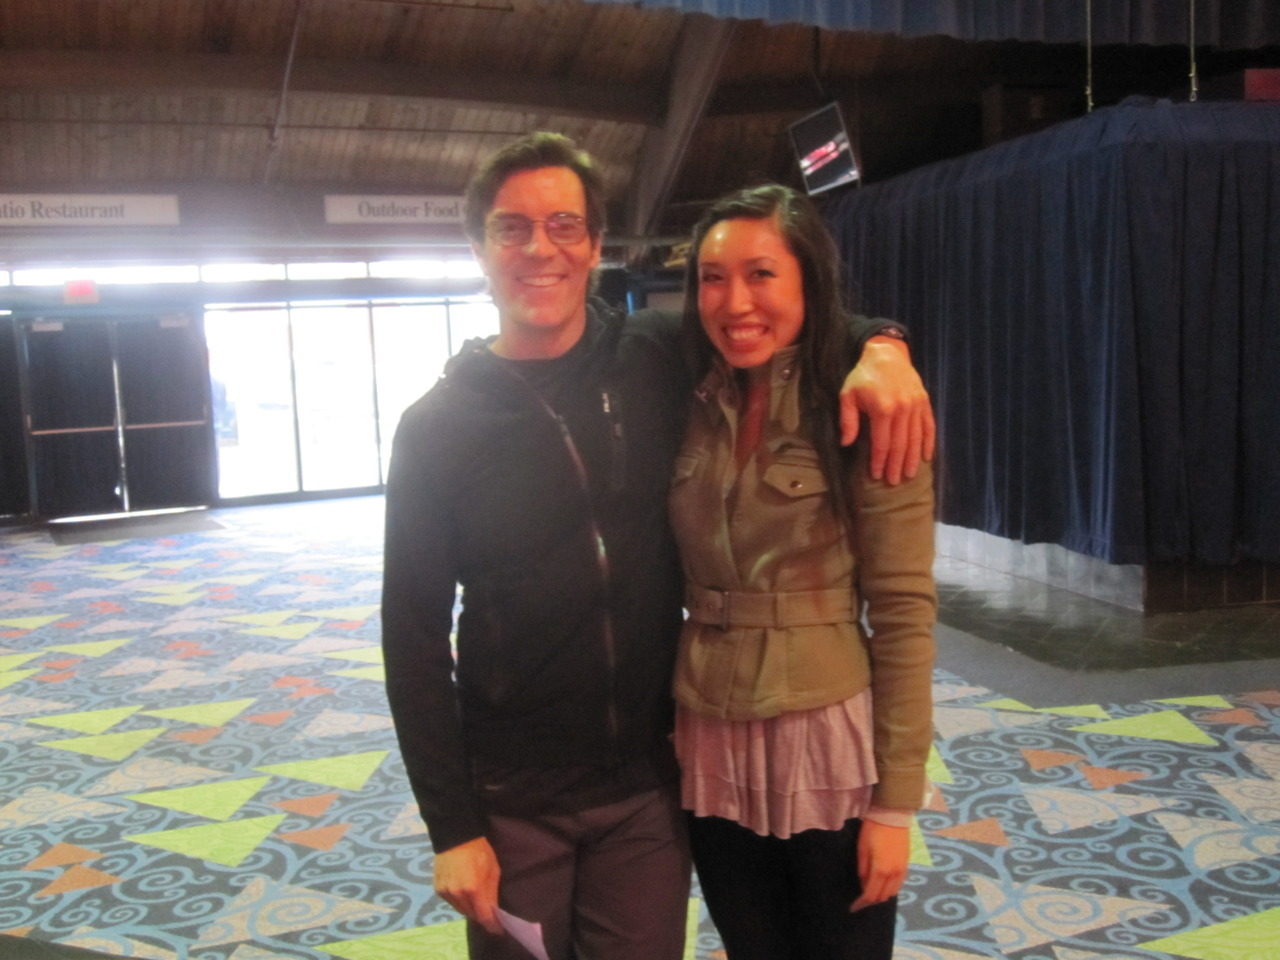 I met Tony Horton, celebrity trainer and fitness video extraordinaire, aka the P90X guy, at Fitness Atlantic yesterday in Connecticut. At first I didn't recognize him because his hair was a little bit longer. He's very vibrant and approachable and not as big as I thought he would be! He was doing a special workout before the Fitness Atlantic fitness competition (which I will be blogging on later). Def made my ticket to the show worth it!